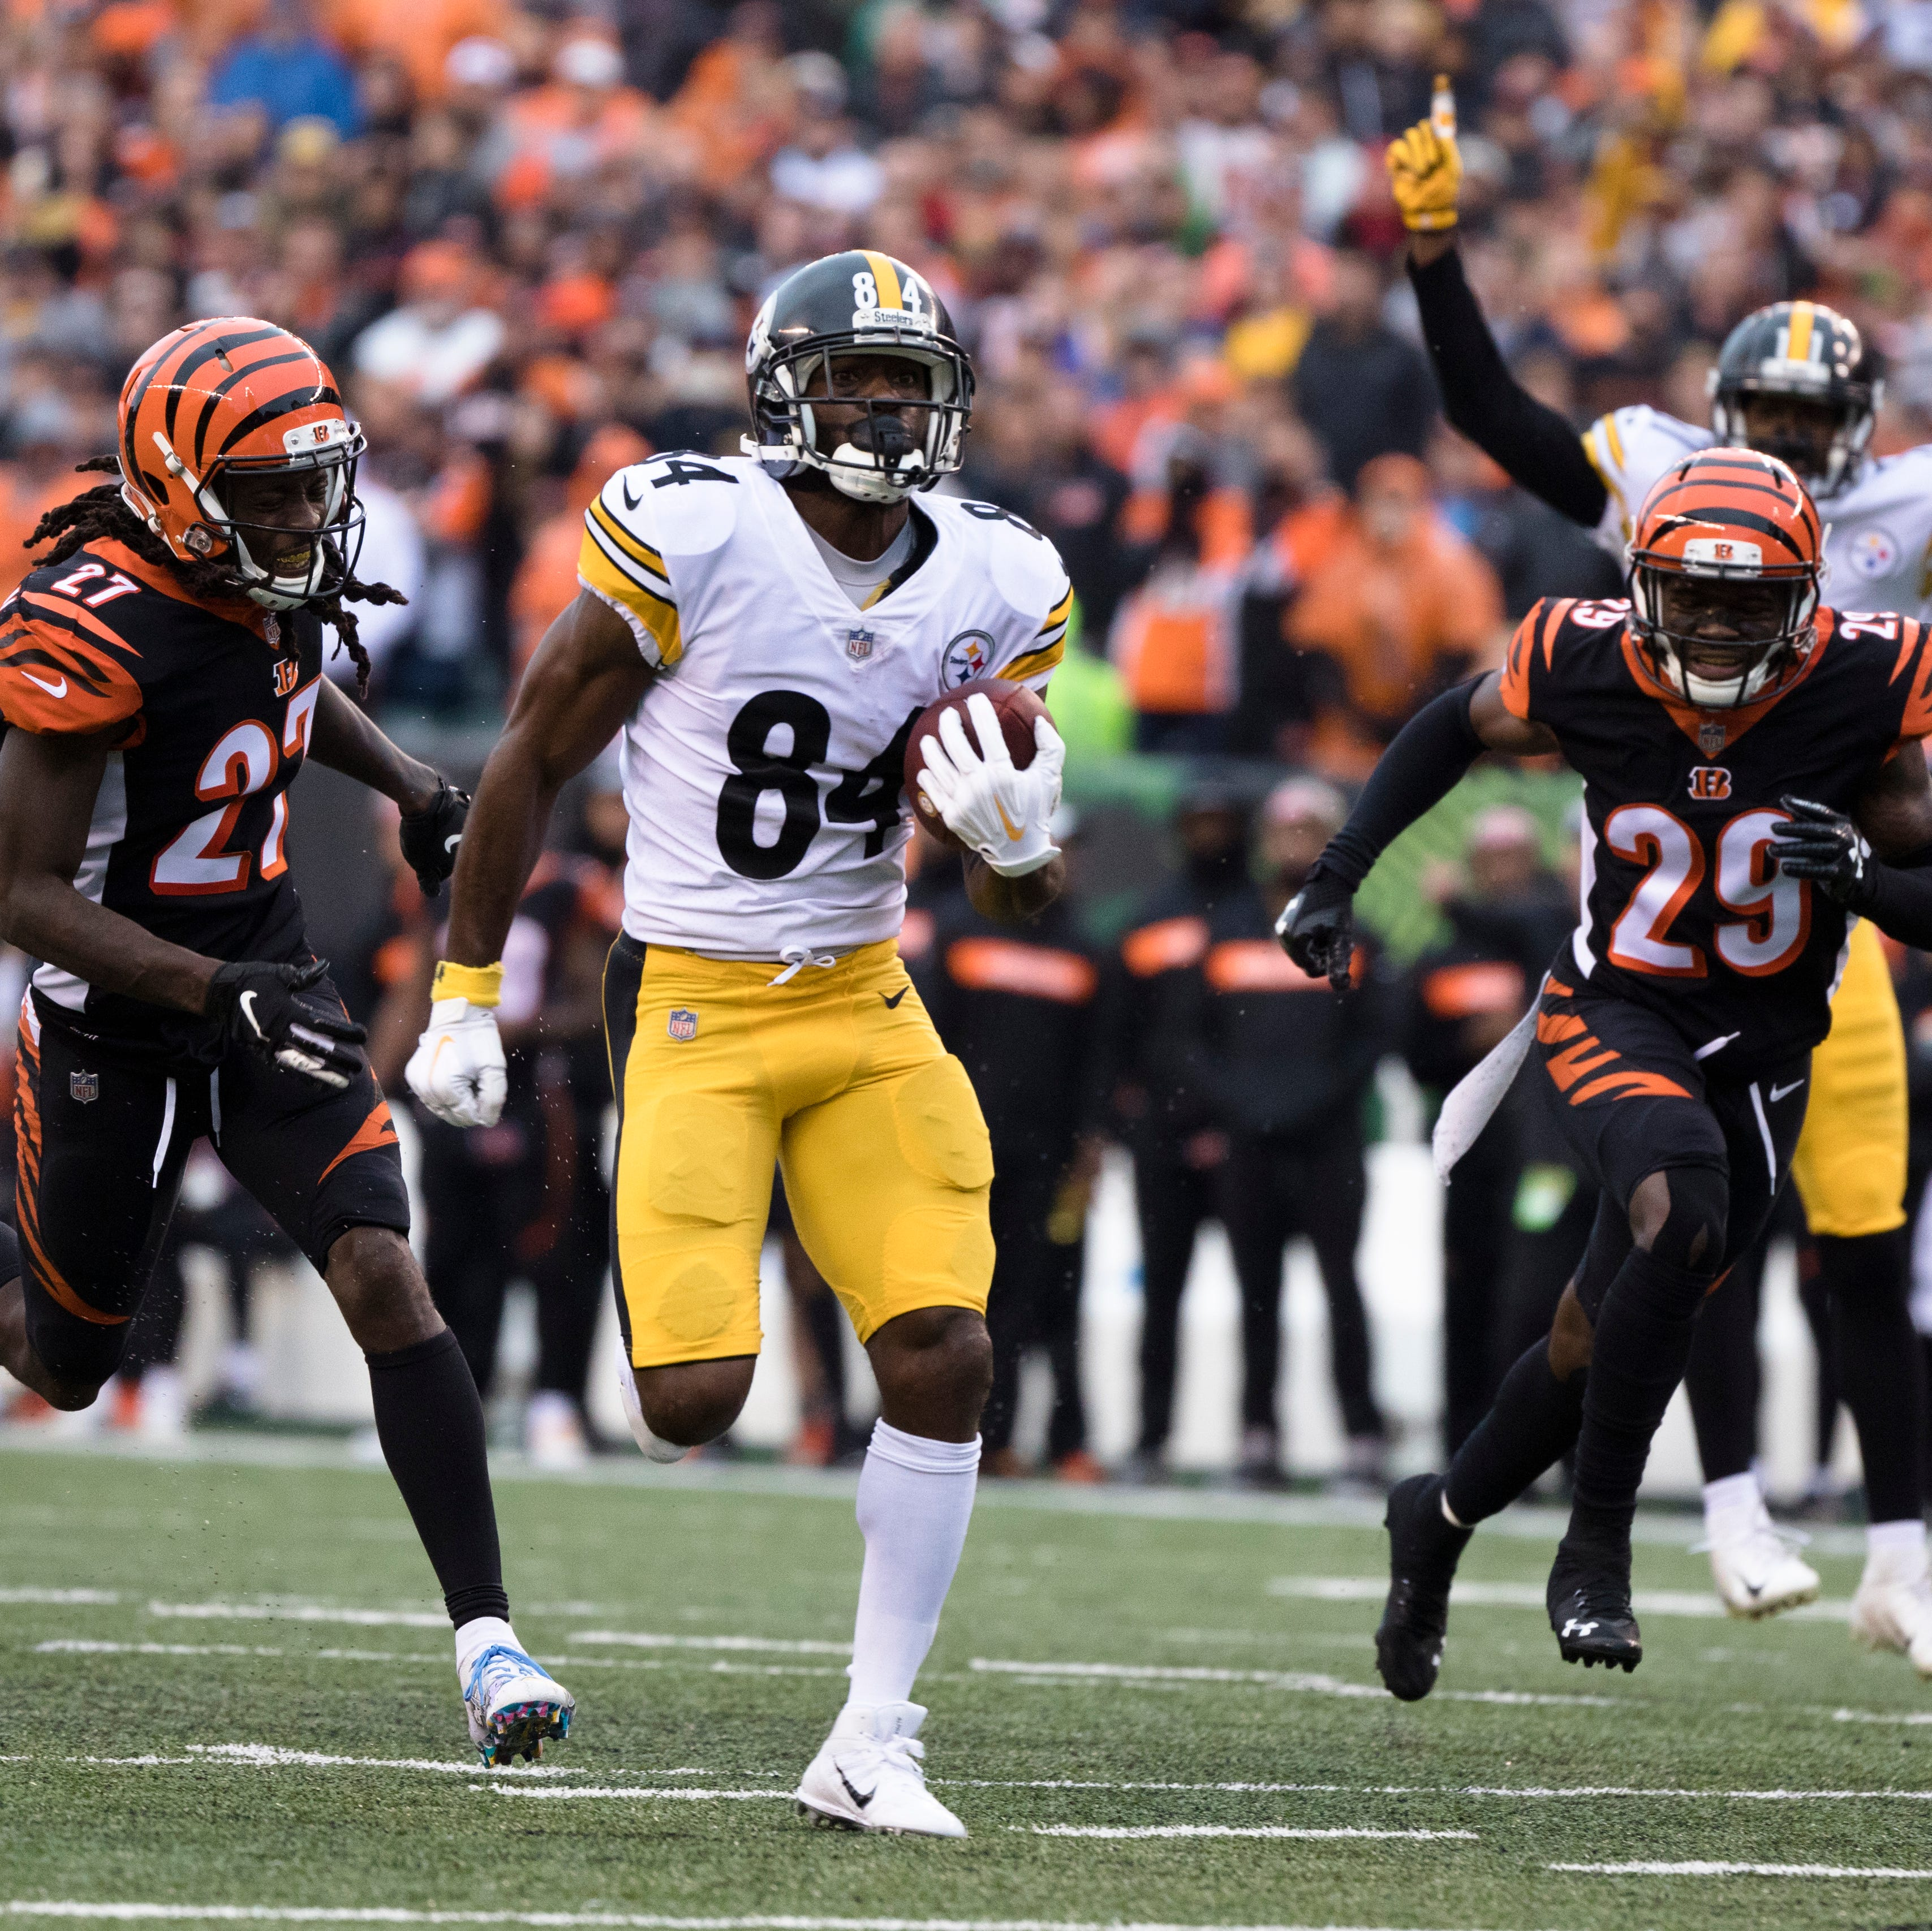 Doc's Morning Line: 10 things we learned from Cincinnati Bengals vs. Pittsburgh Steelers